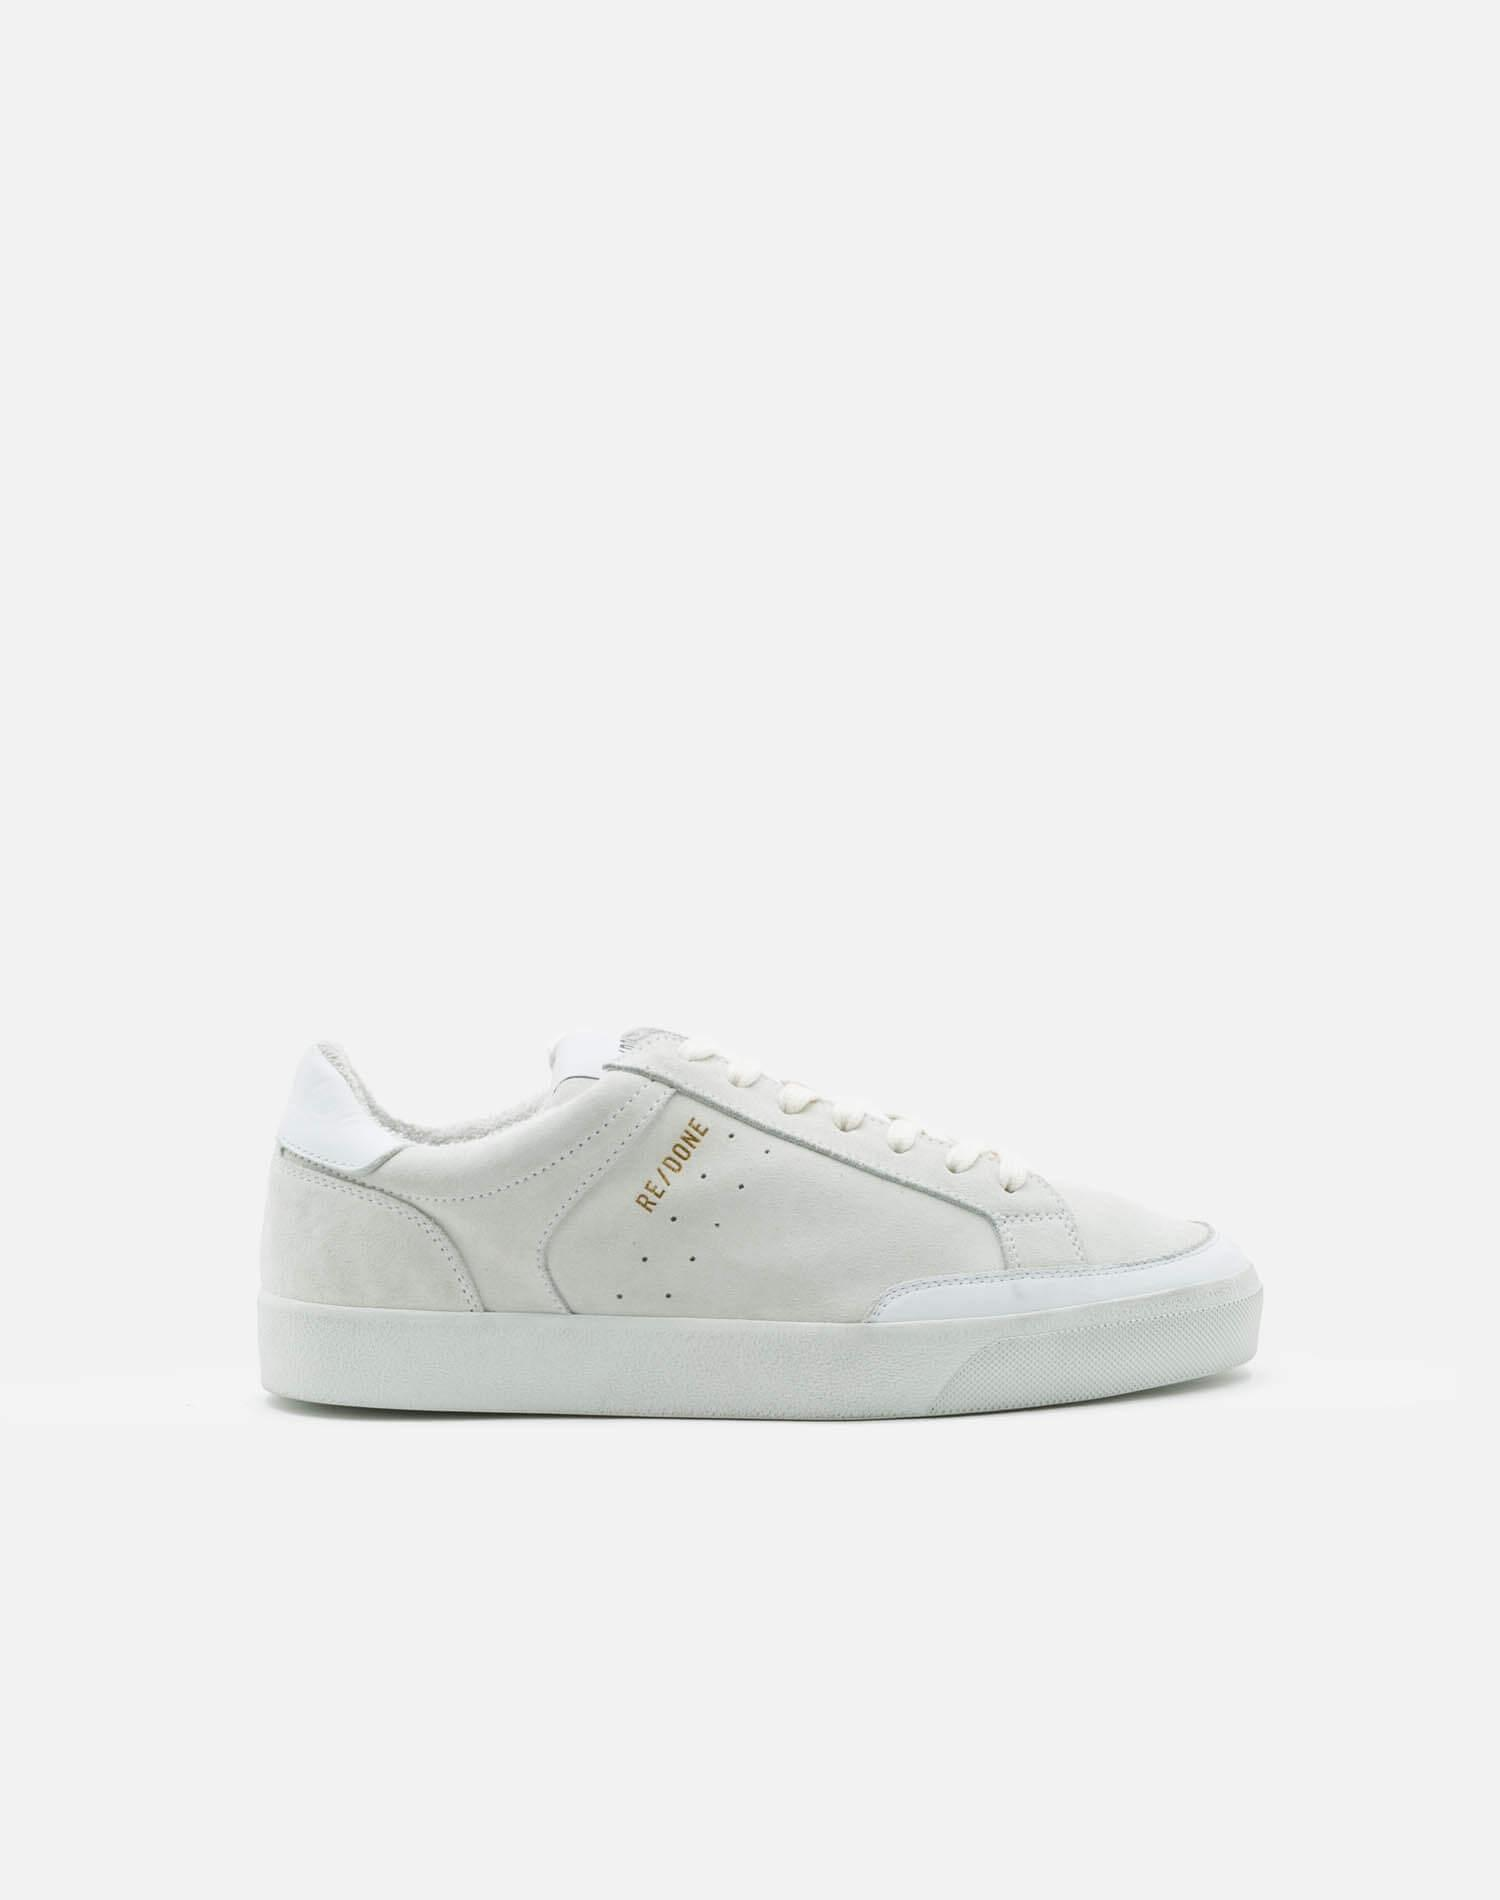 90s Skate Shoe - White Suede